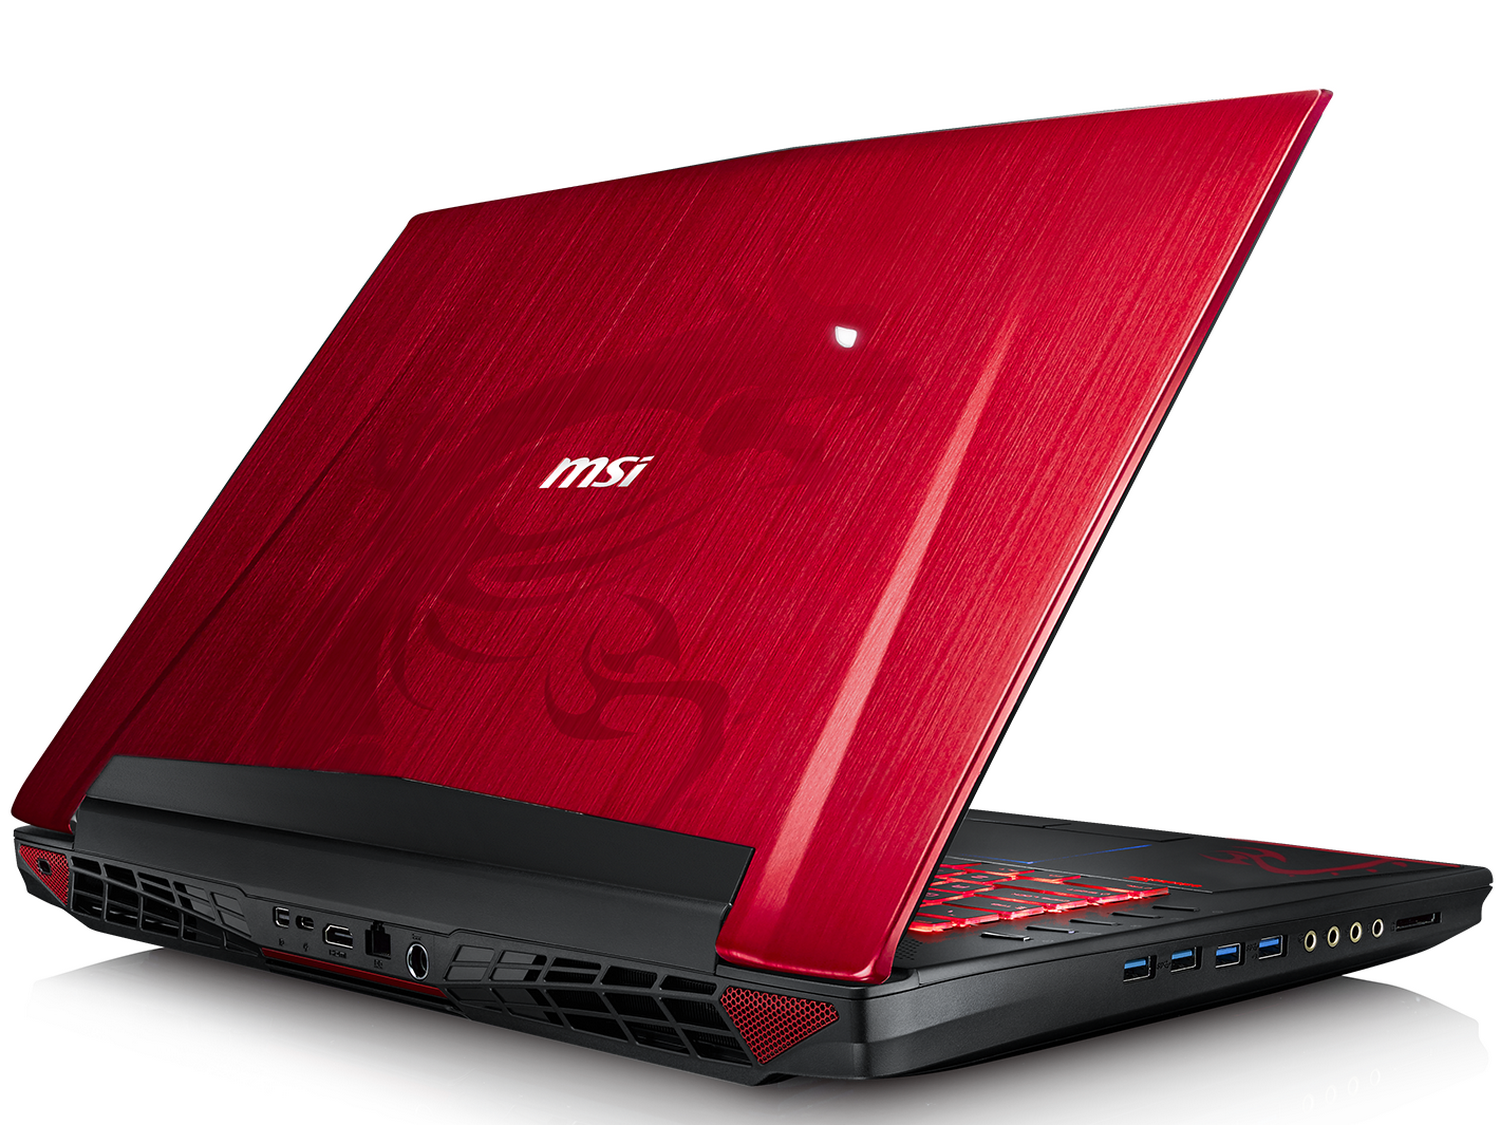 MSI GT72 Dominator Pro Dragon Edition EC Windows 7 64-BIT